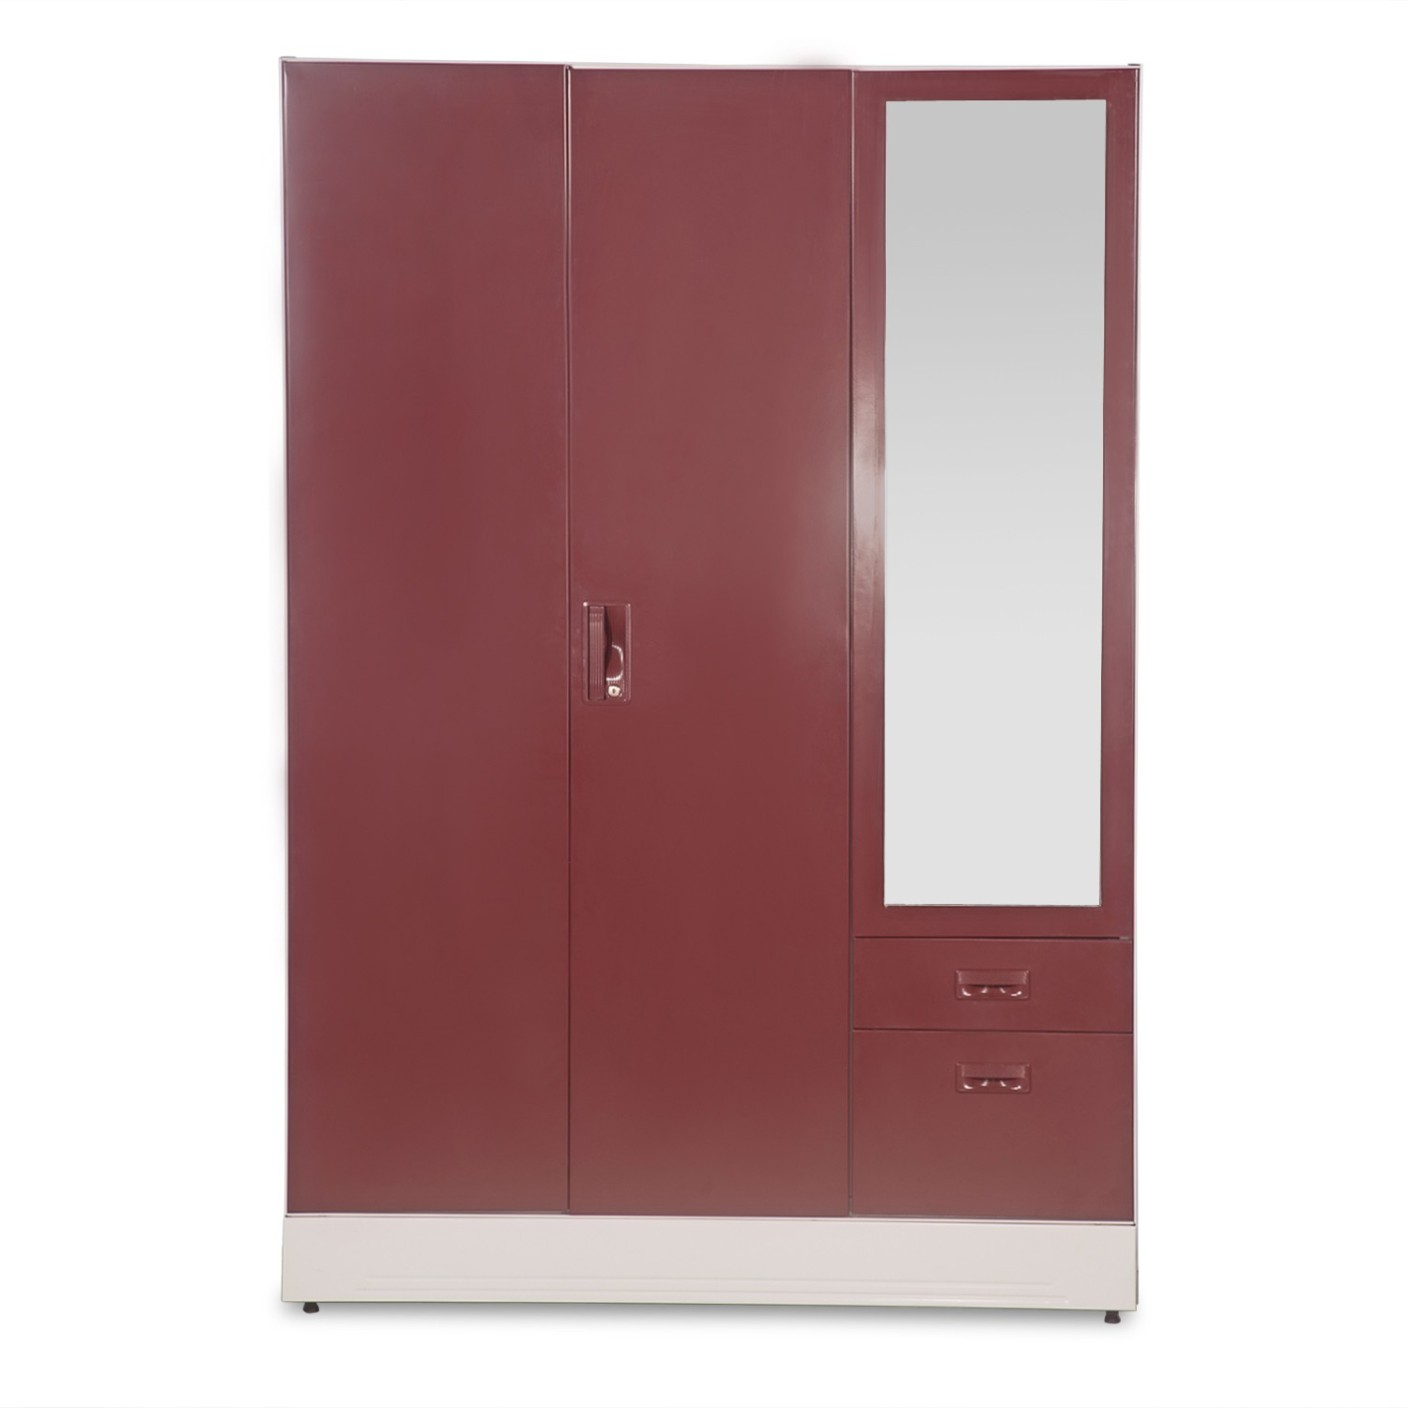 Godrej interio slimline blend metal almirah price in india buy godrej interio slimline blend Godrej home furniture price list bangalore